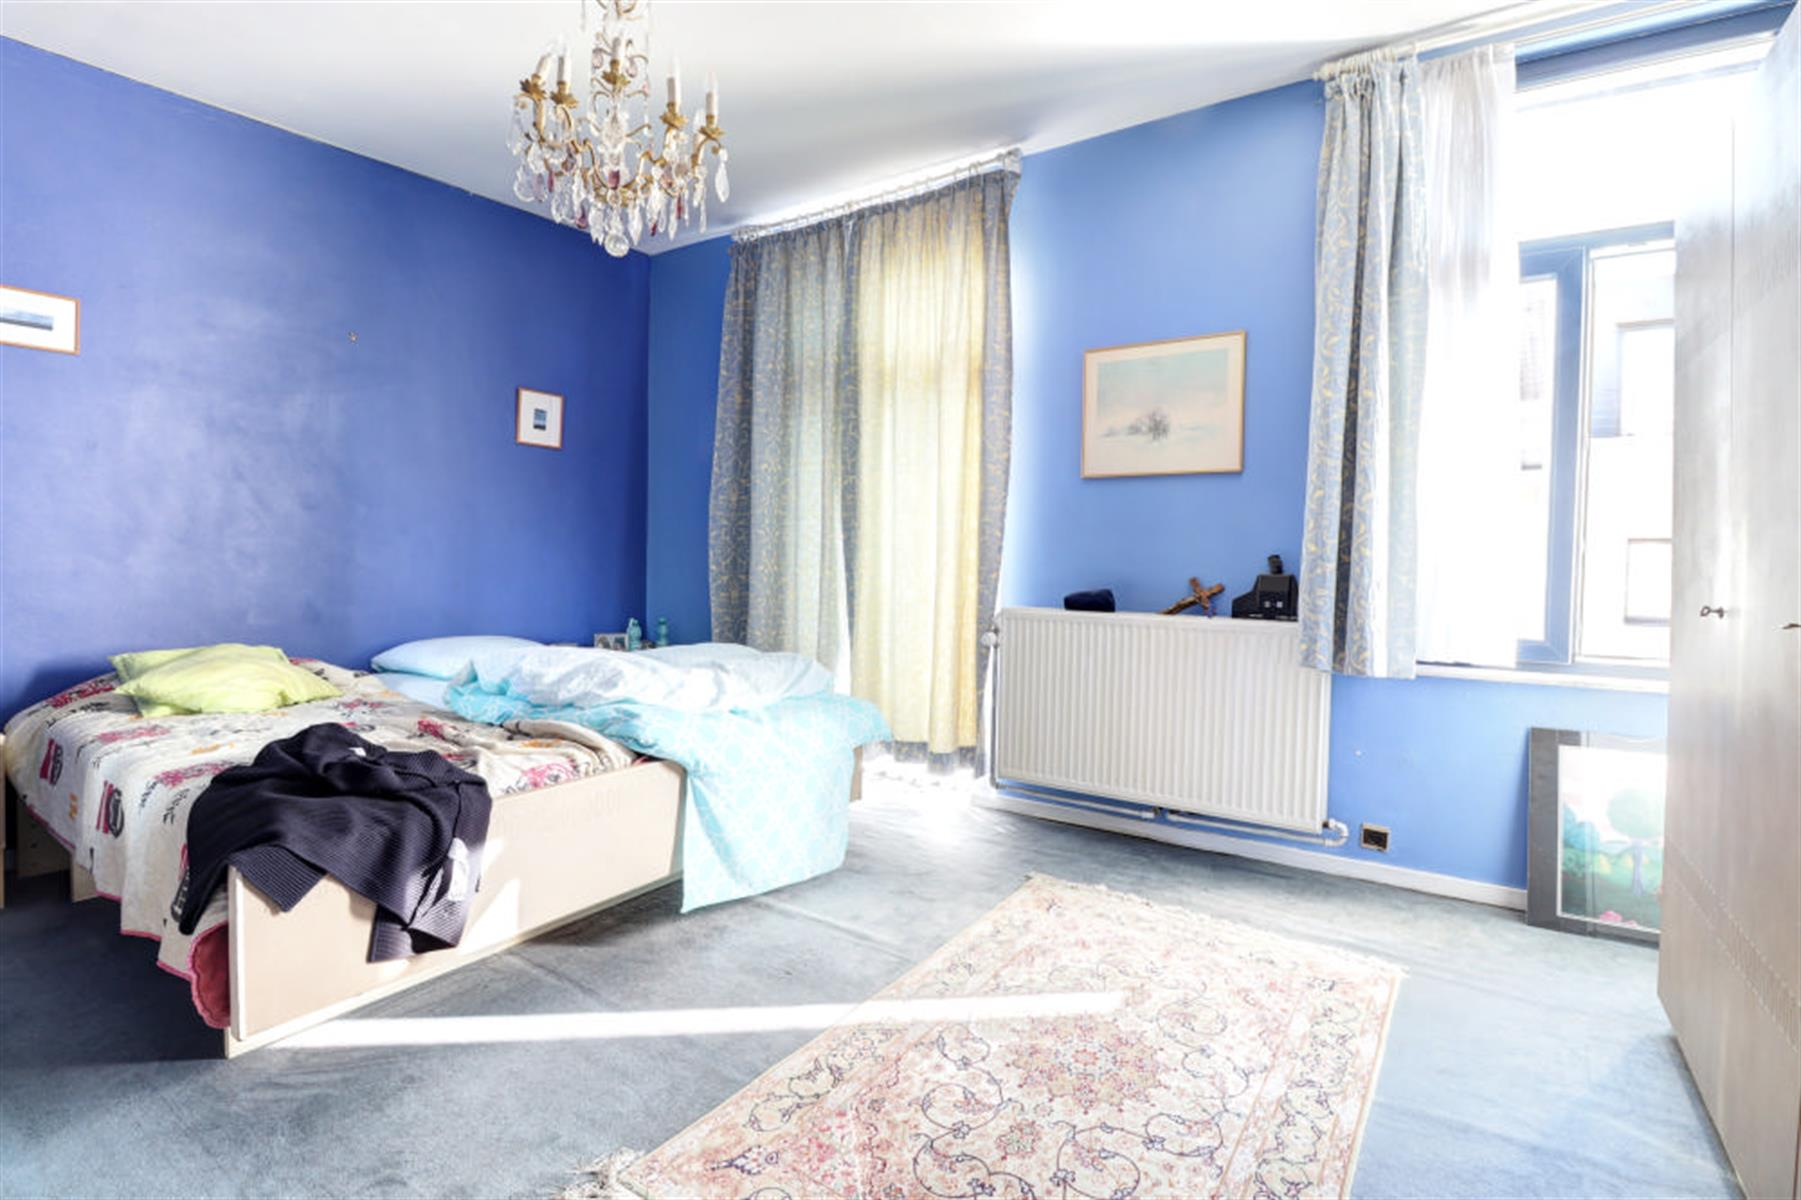 House - Uccle - #3905975-14